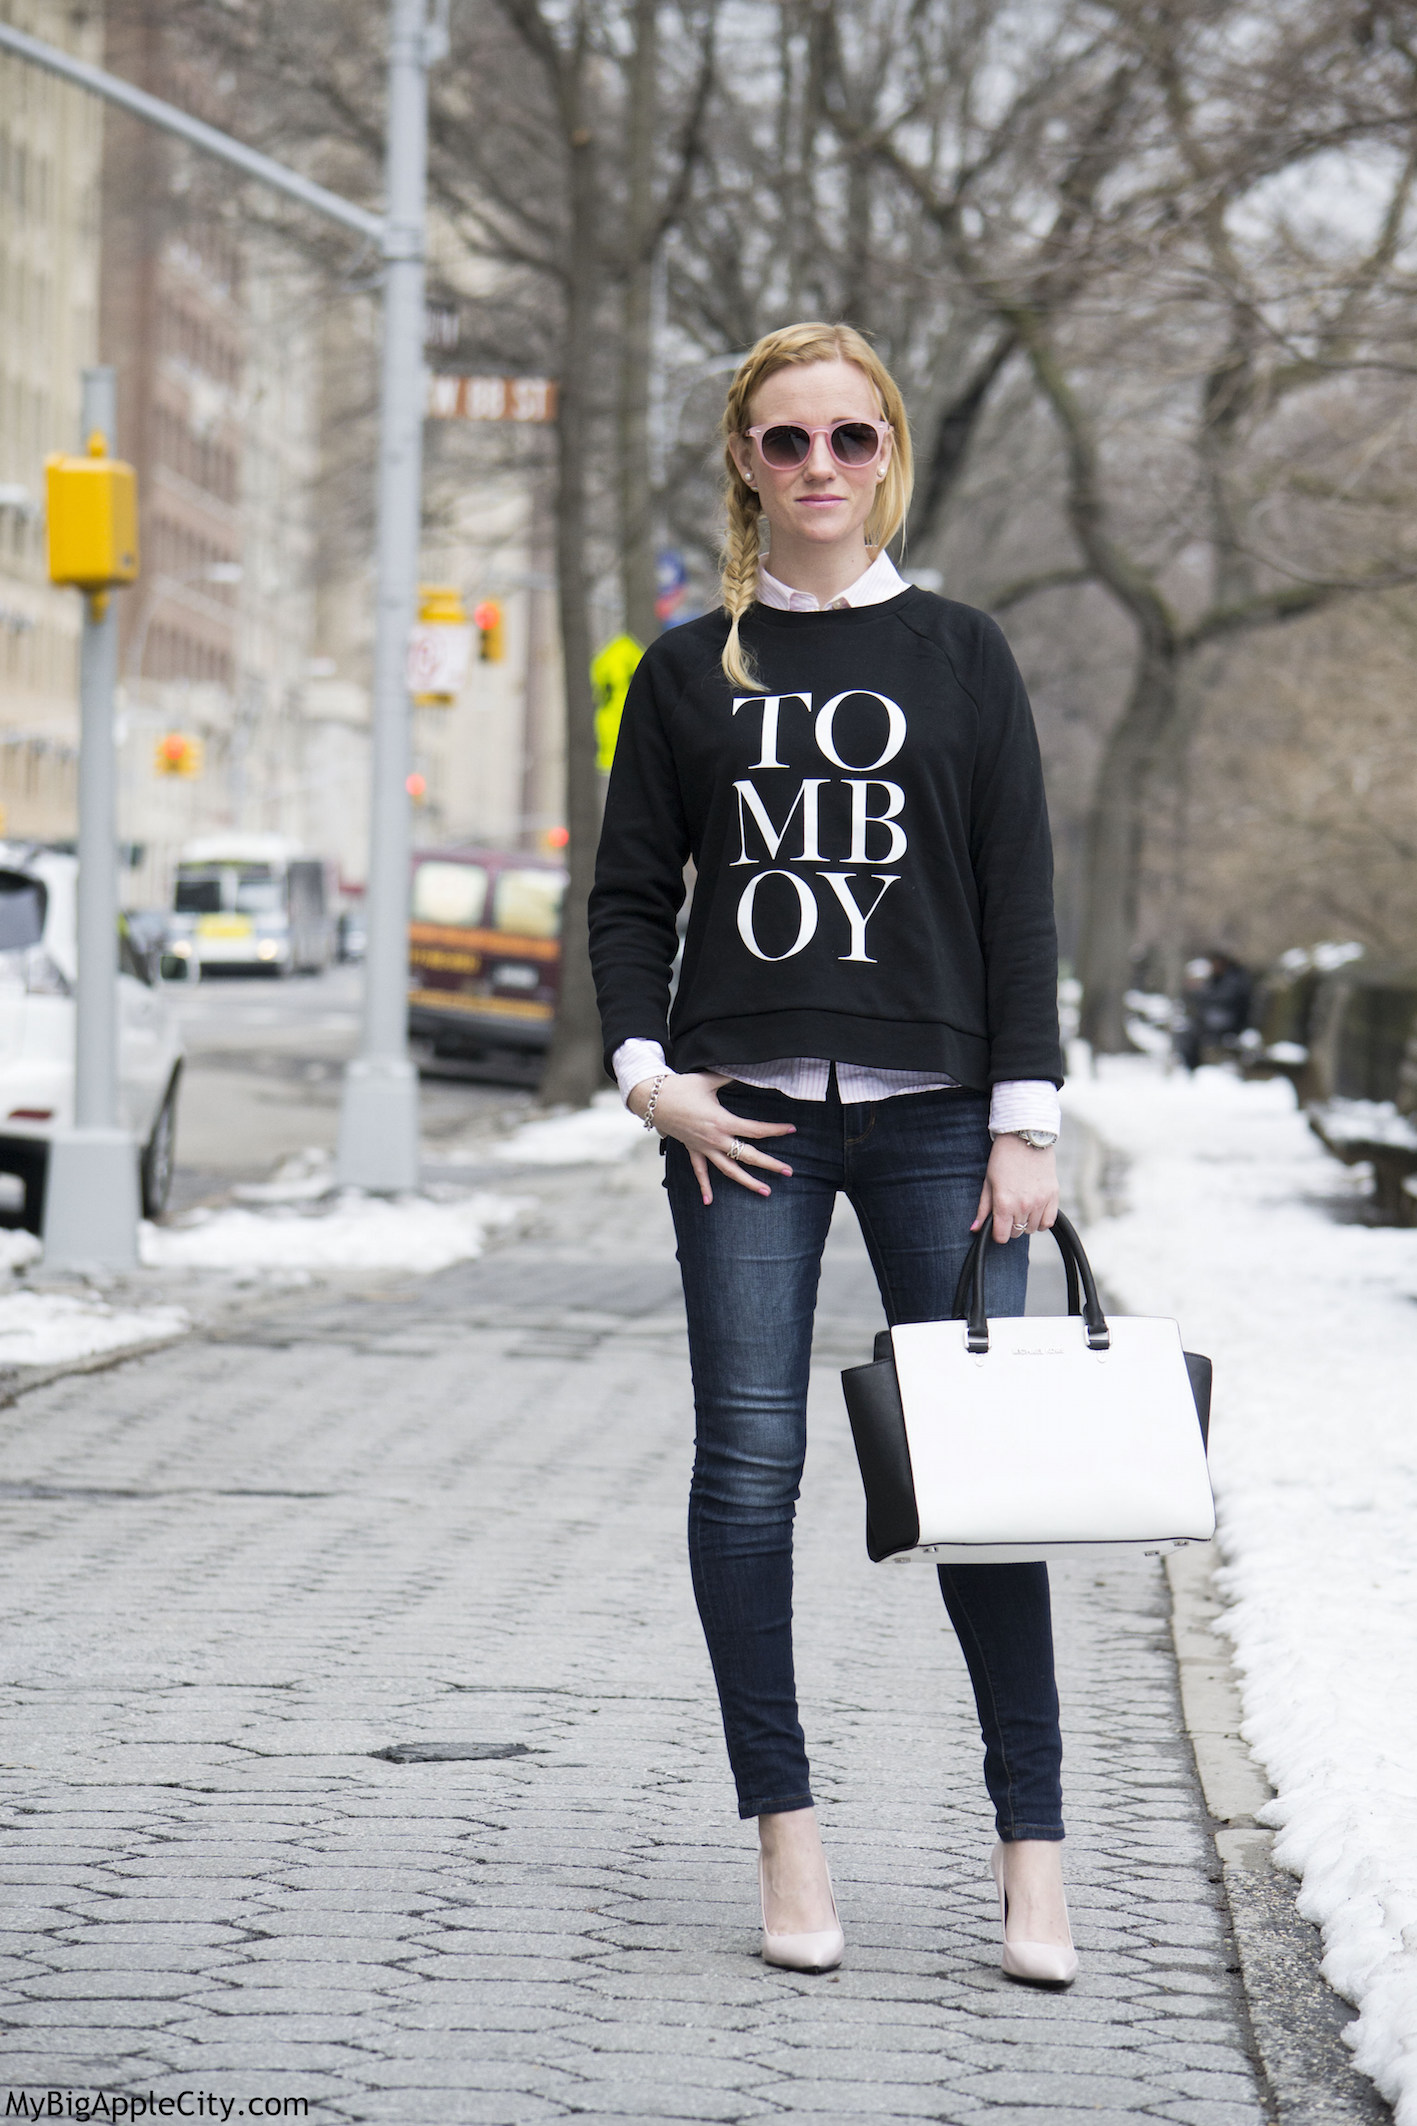 NYC-Fashion-blogger-OOTD-MyBigApplecity